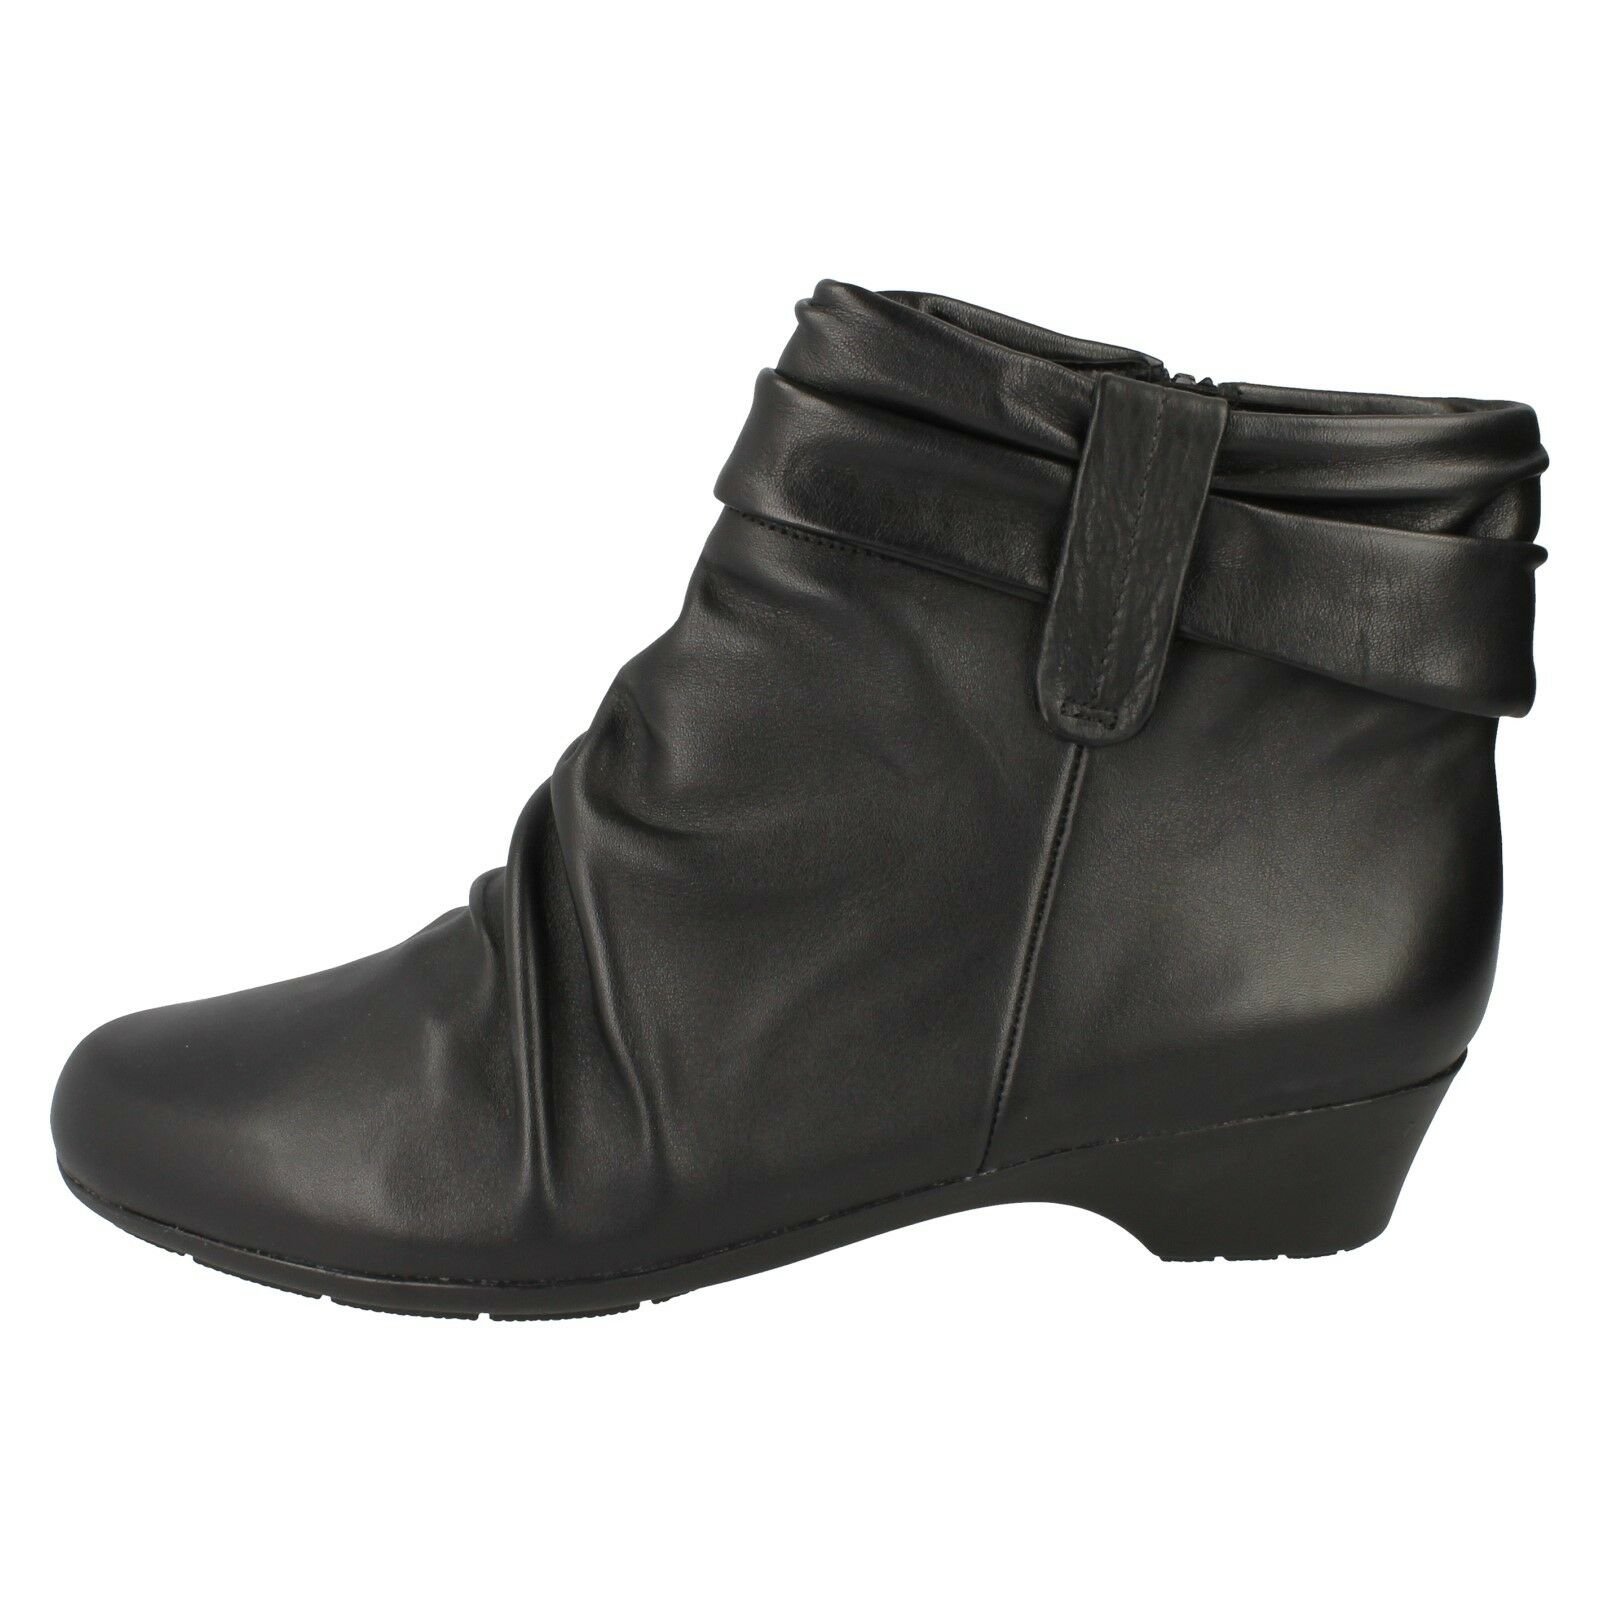 LADIES CLARKS RUCHED WIDE FIT SOFT LEATHER ZIP MATRON UP CASUAL ANKLE BOOTS MATRON ZIP ELLA 66b507